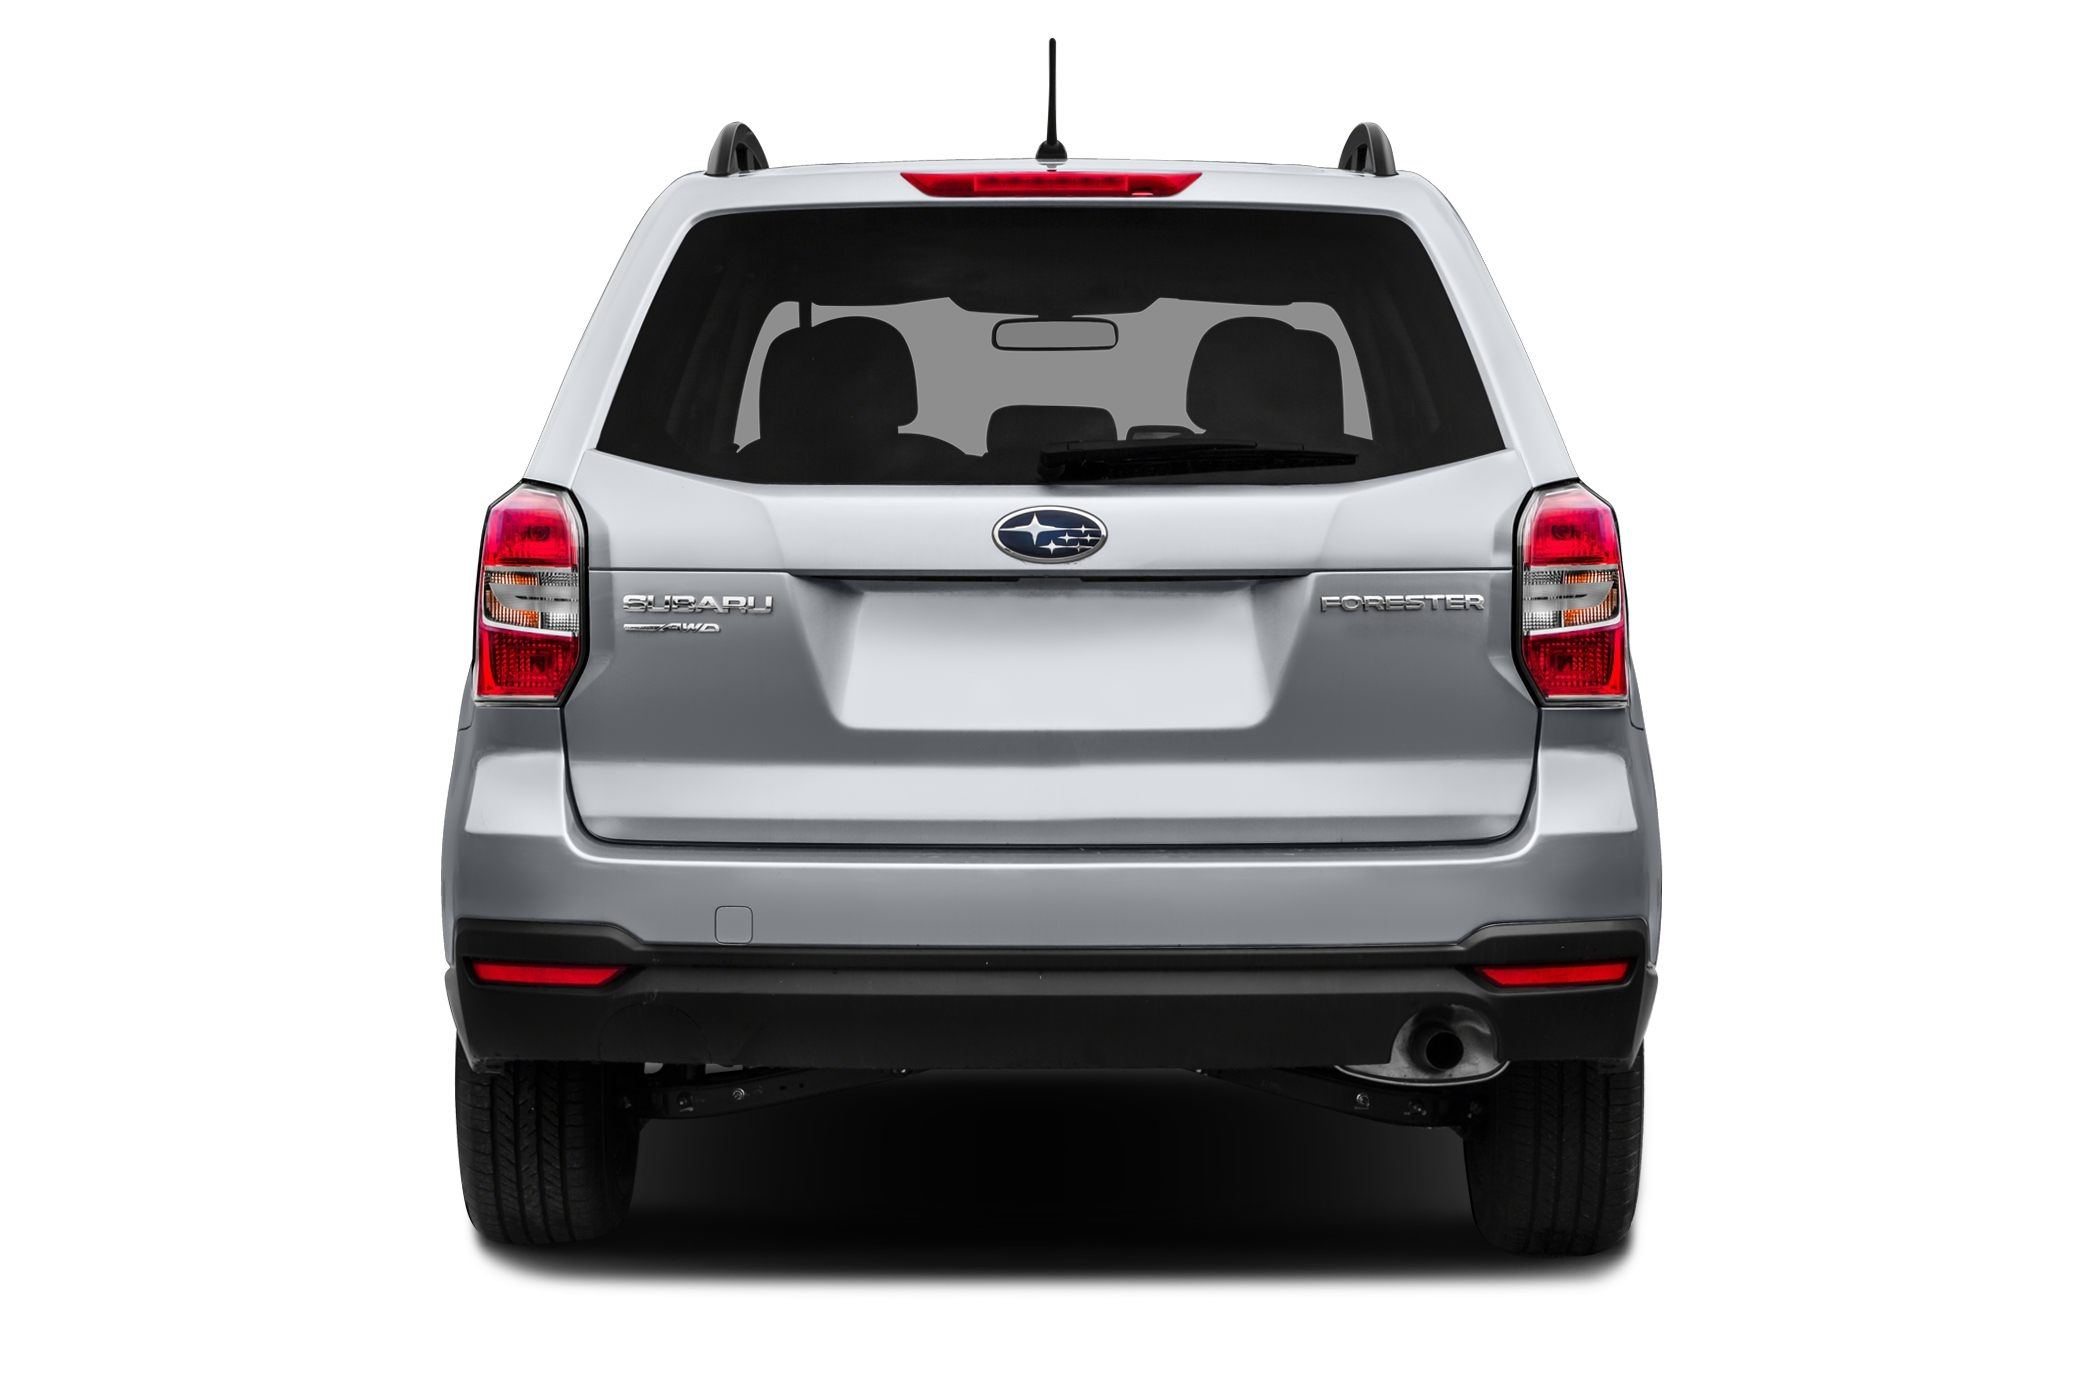 new 2016 subaru forester price photos reviews safety ratings subaru forester invoice price 2015